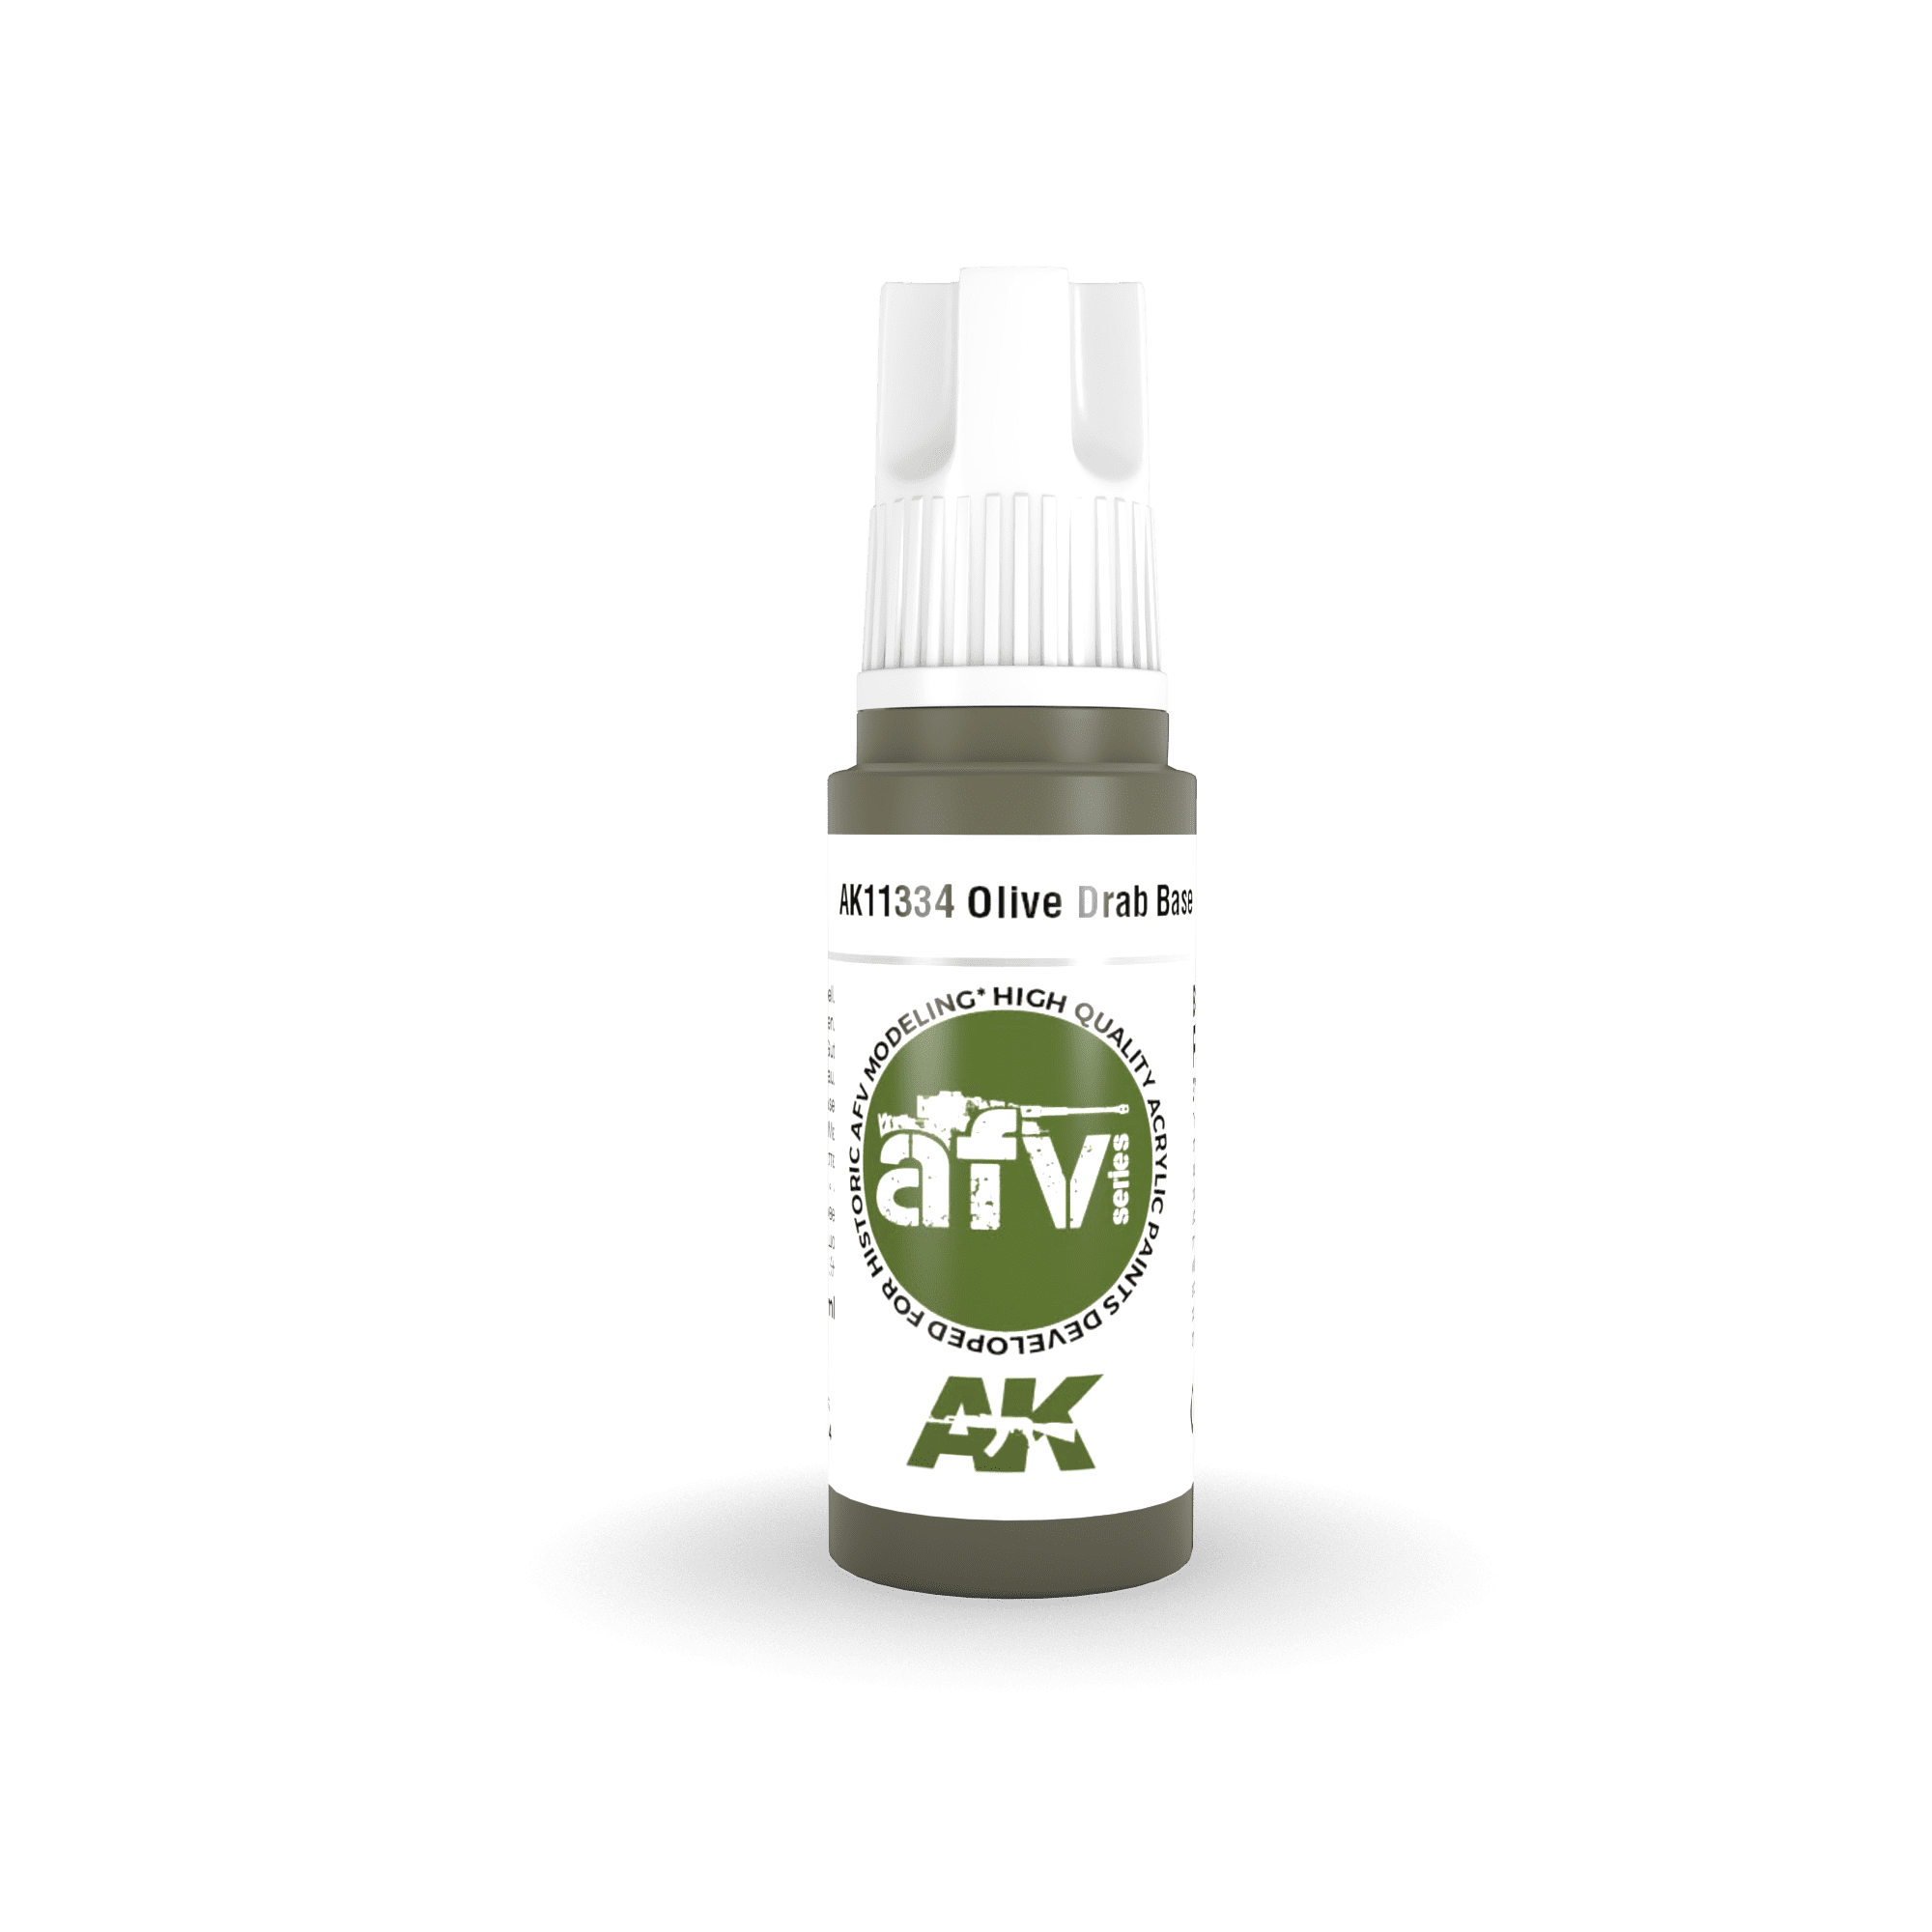 AK Interactive 3G Olive Drab Base